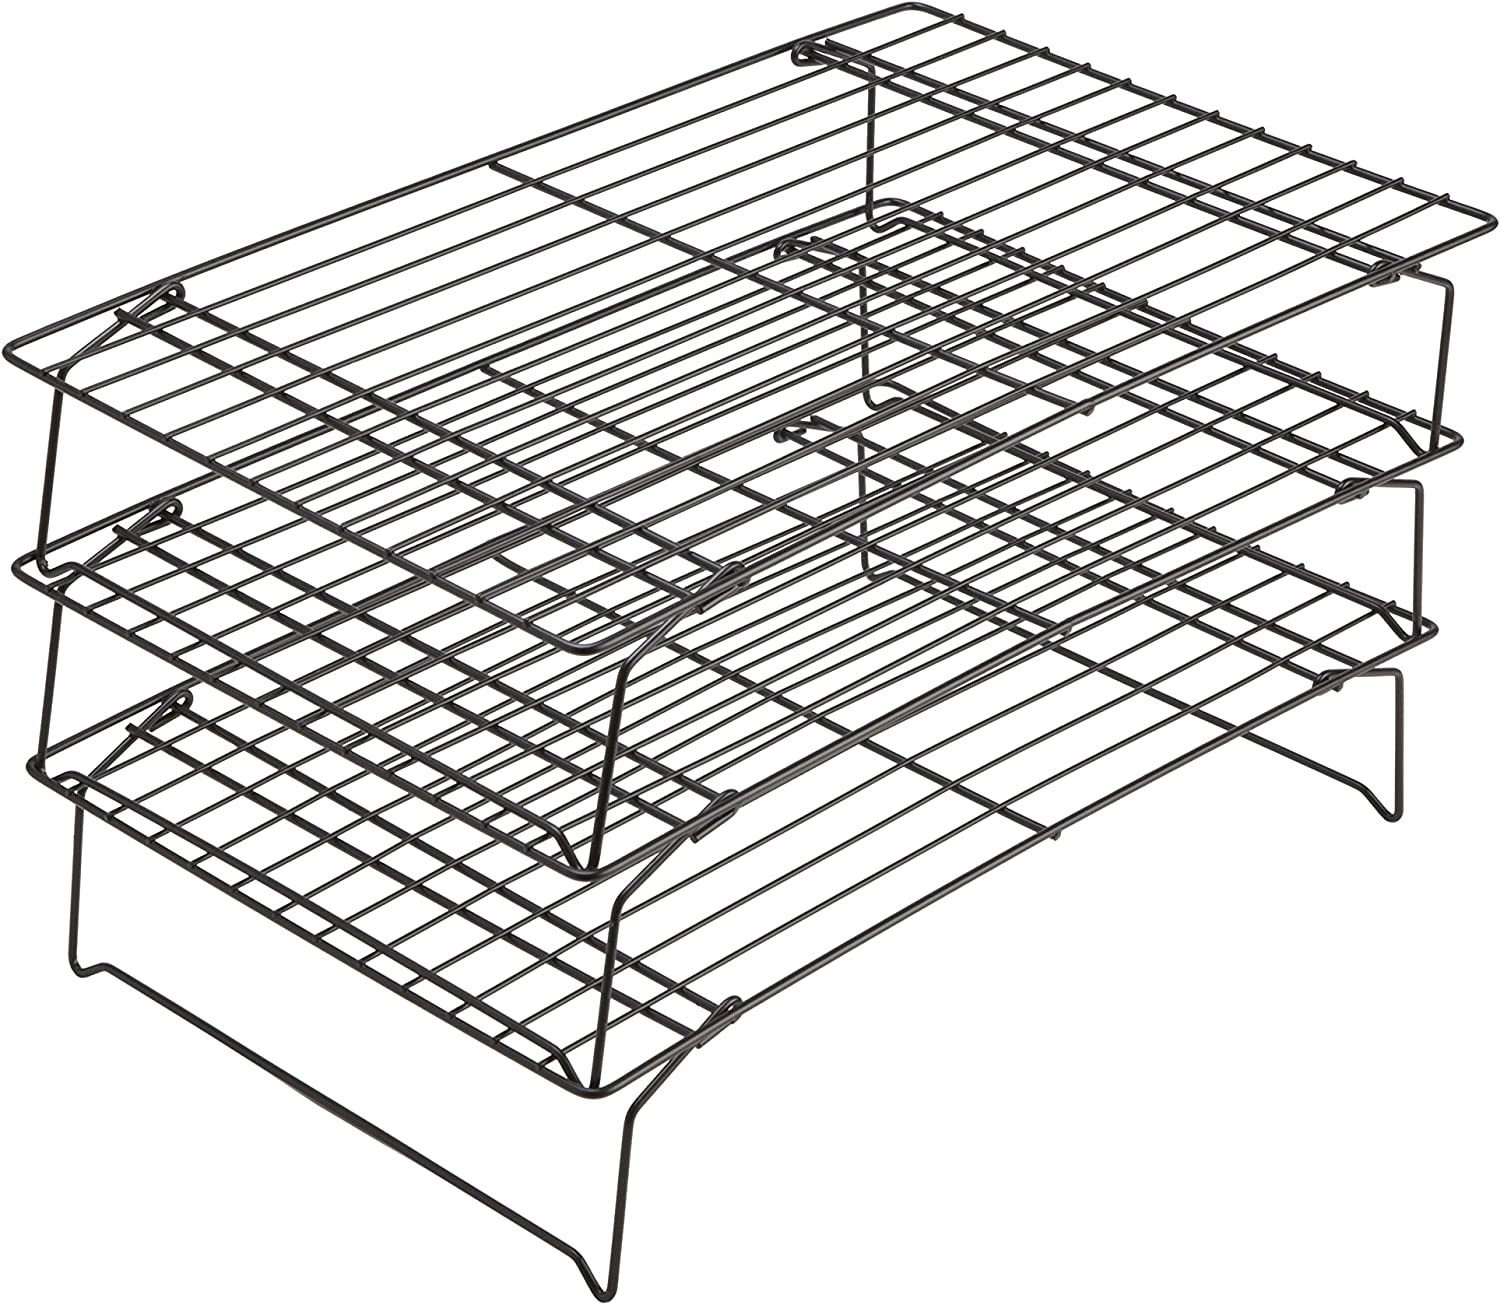 Chicago Metallic 3-Tier Cooling Rack, 15.75-Inch-by-9.75-Inch